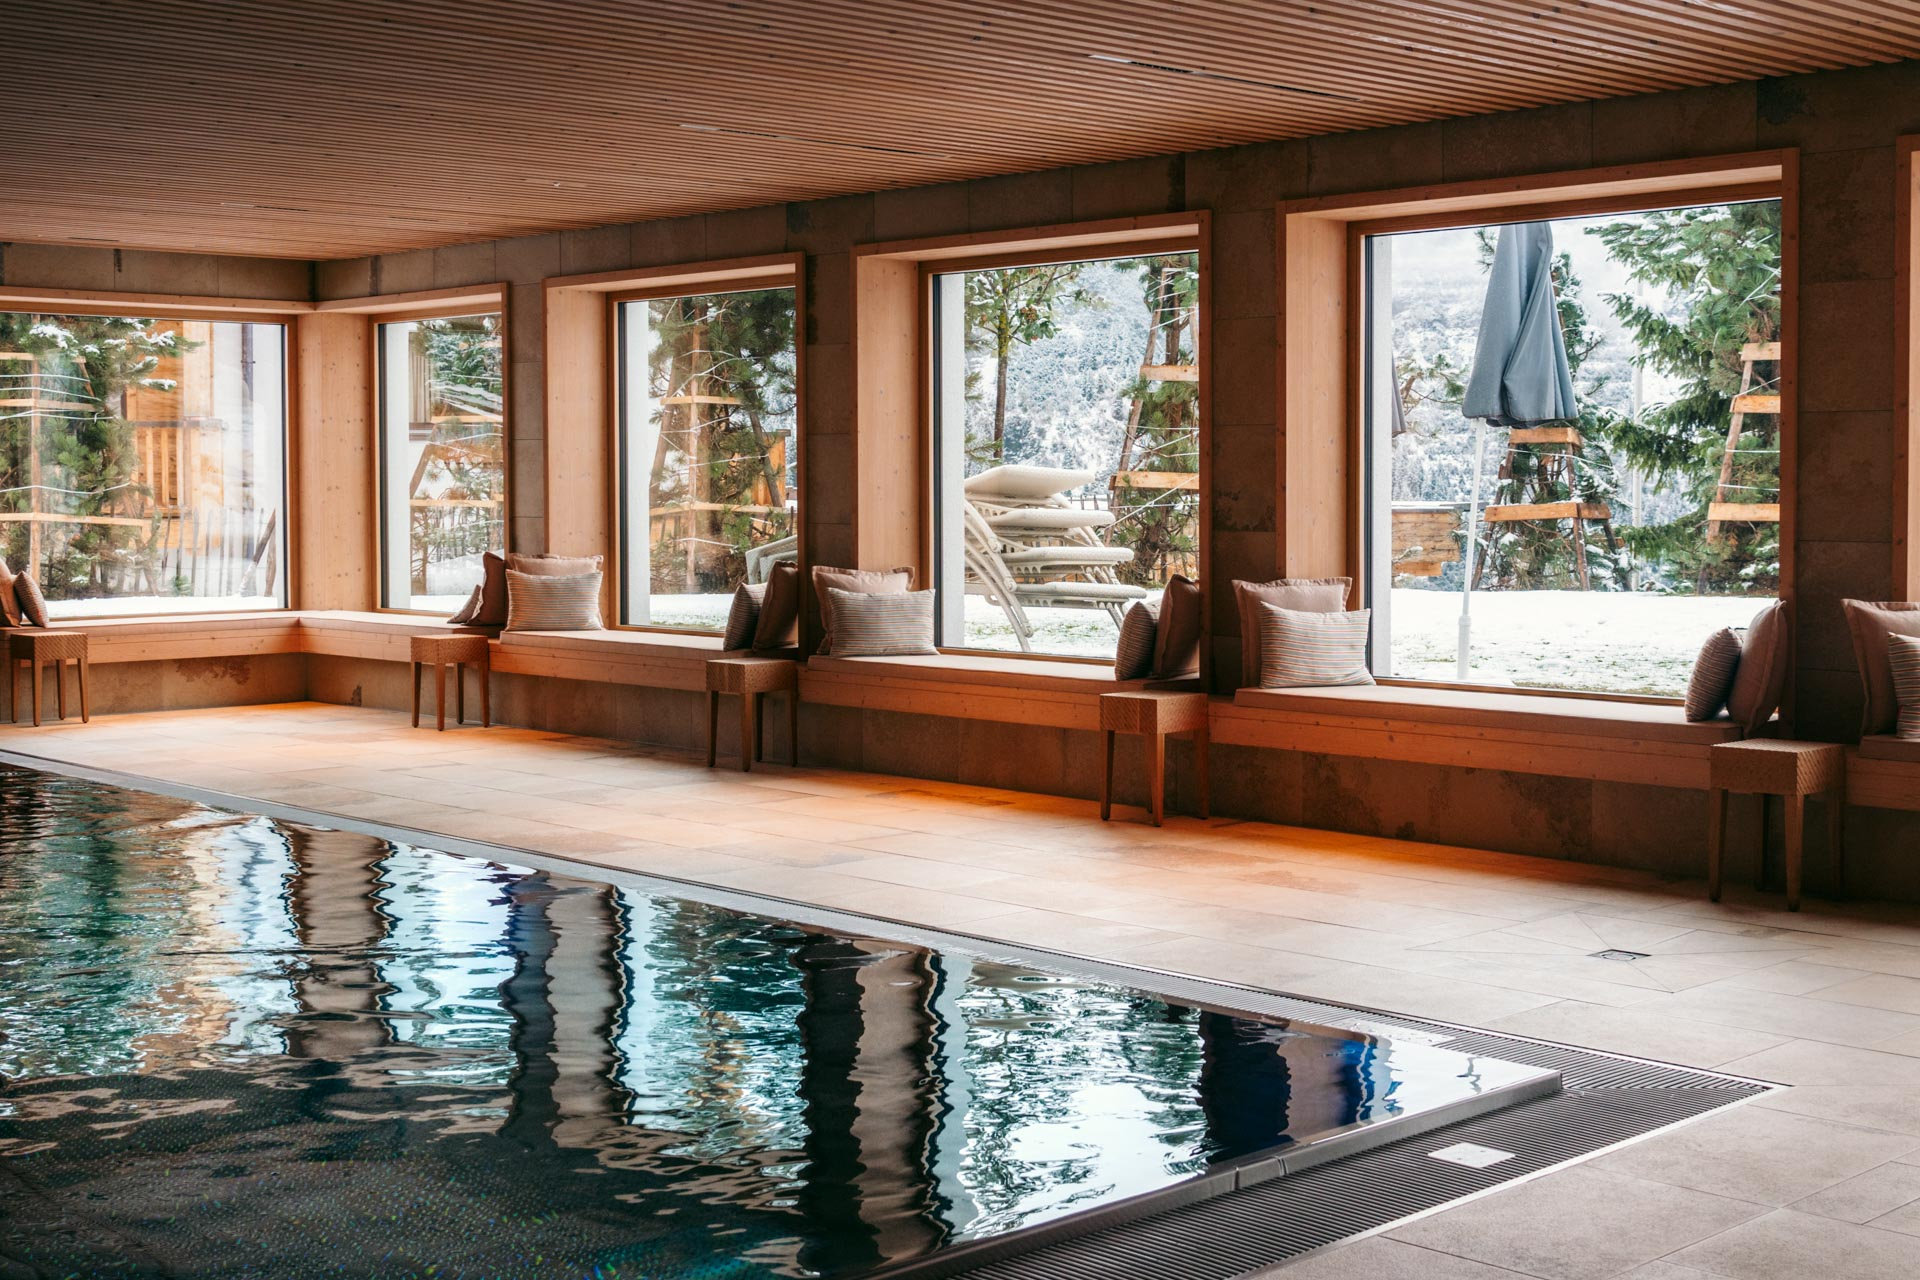 Review of Hotel Sonnenburg in Austria: Exclusive Comfort at 1,650 Metres